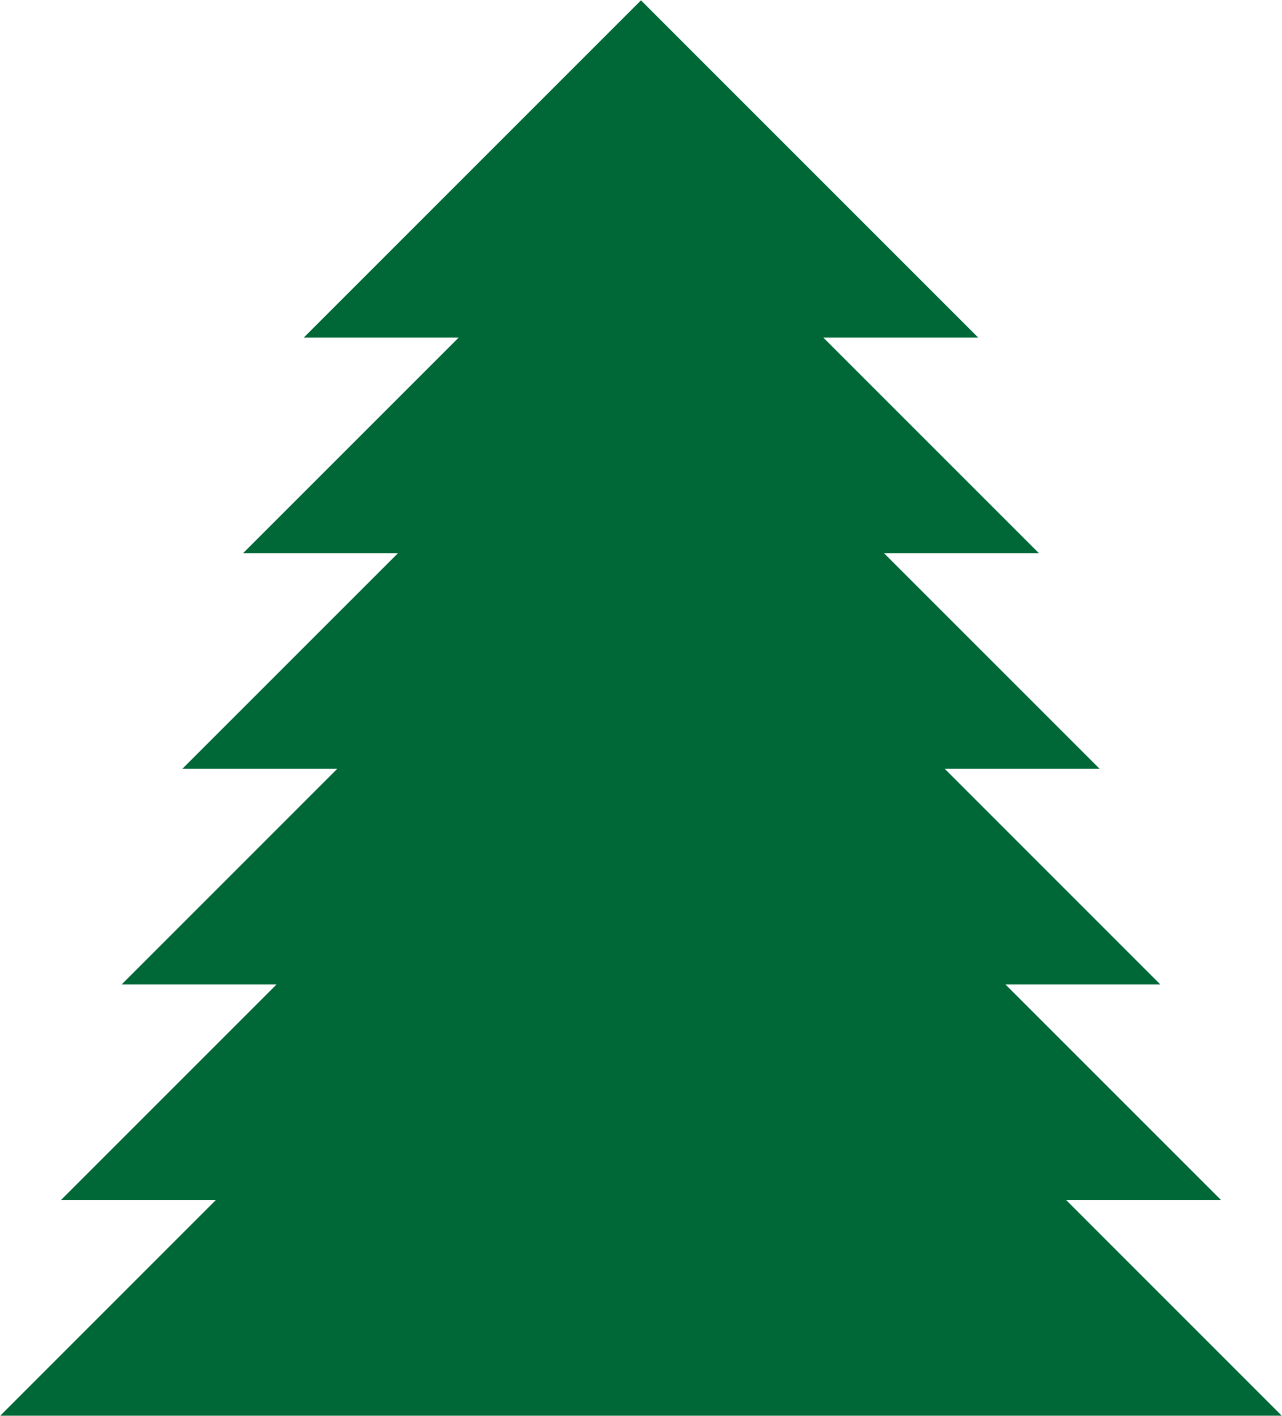 clipart a simple green tree